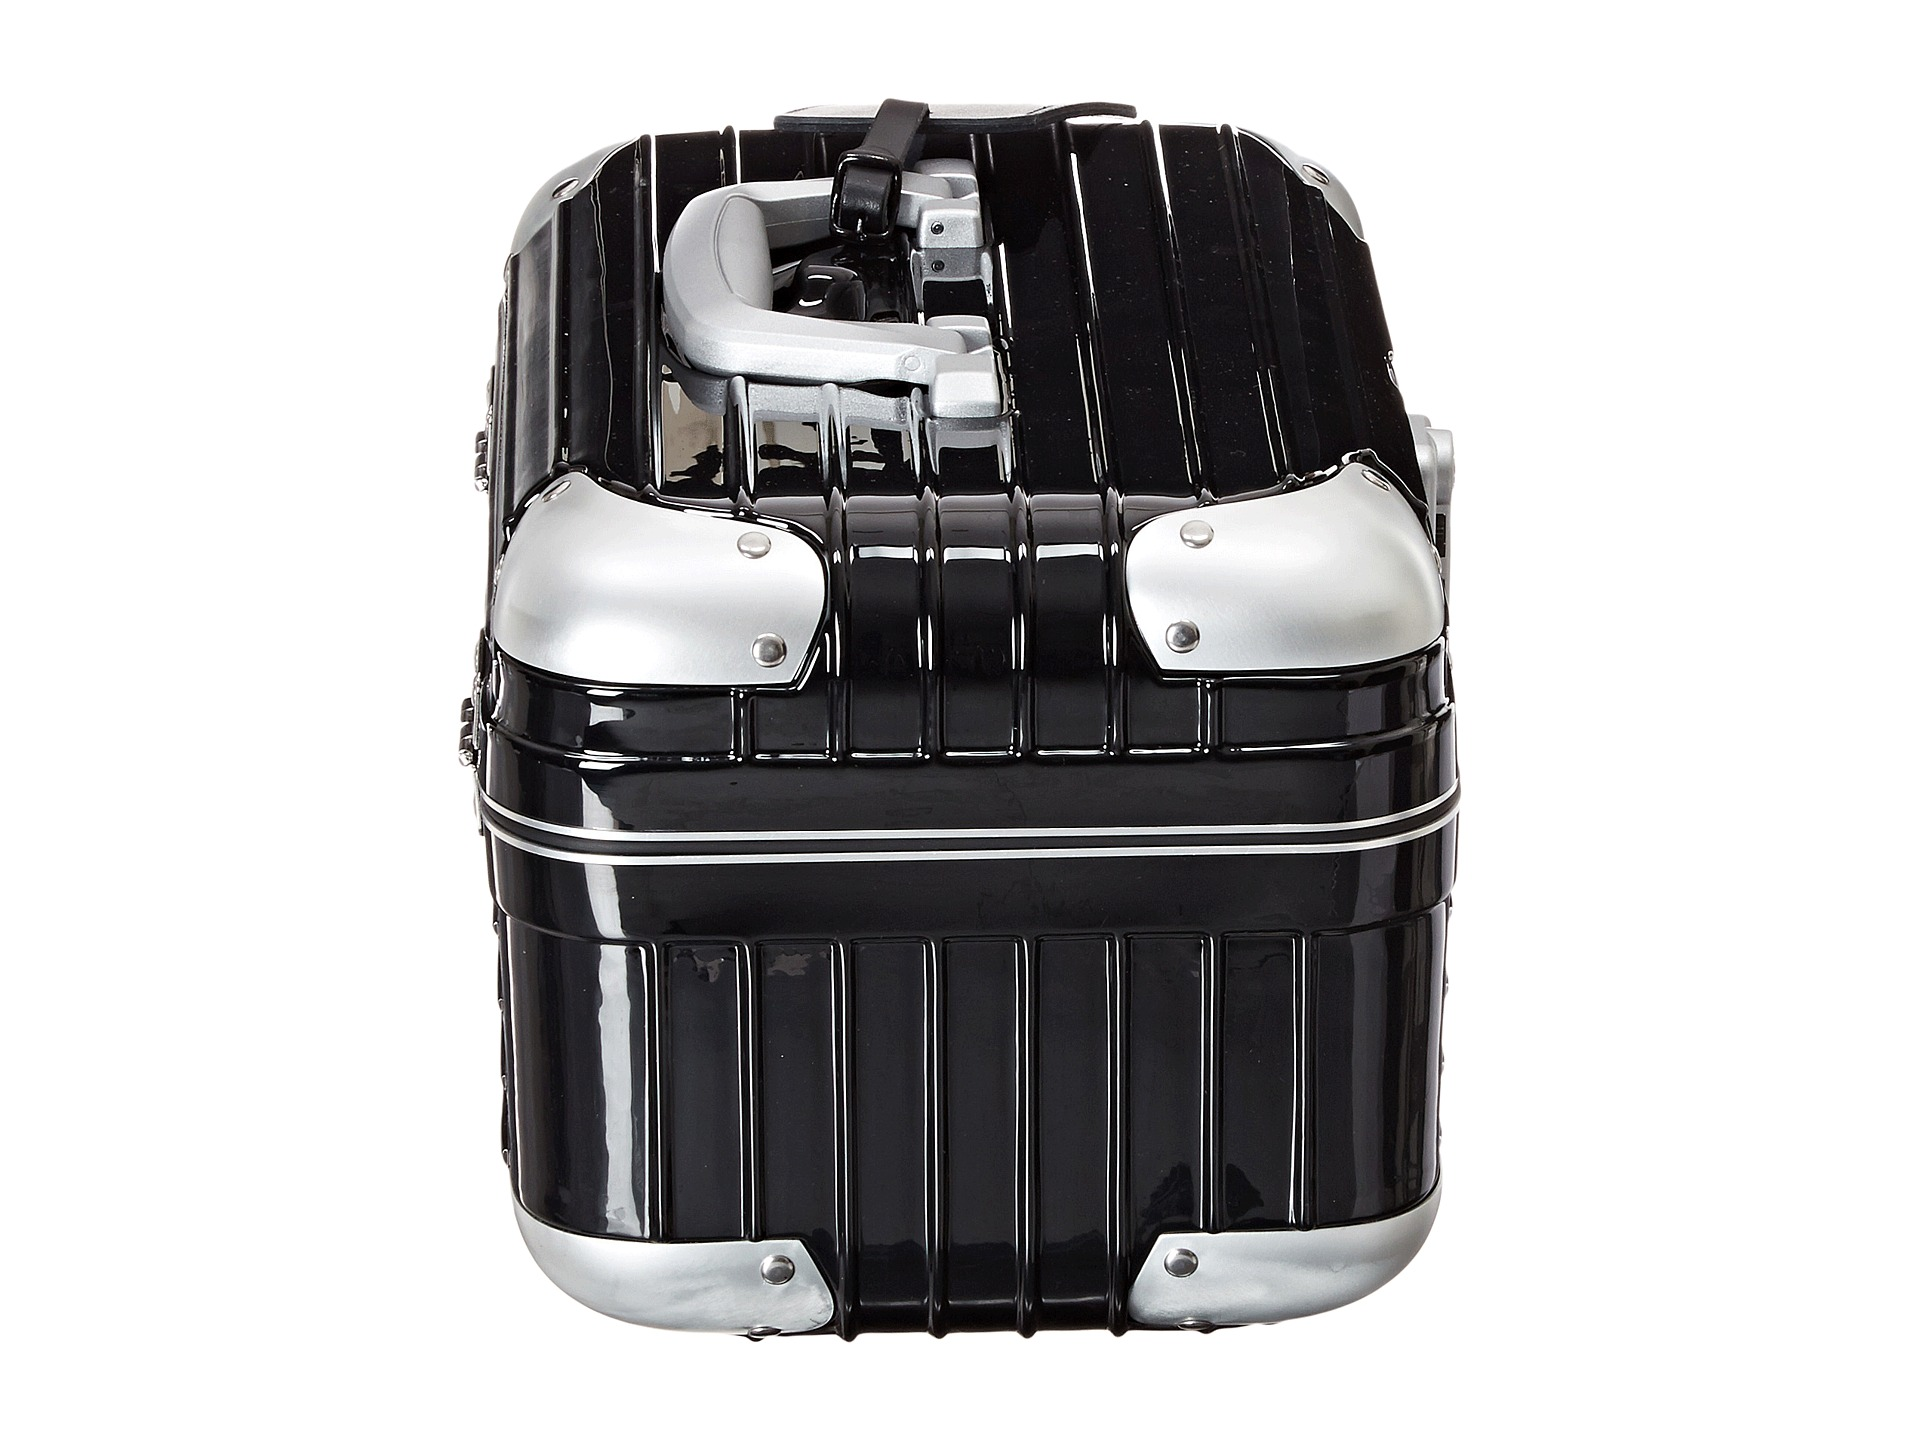 rimowa limbo beauty case free shipping both ways. Black Bedroom Furniture Sets. Home Design Ideas